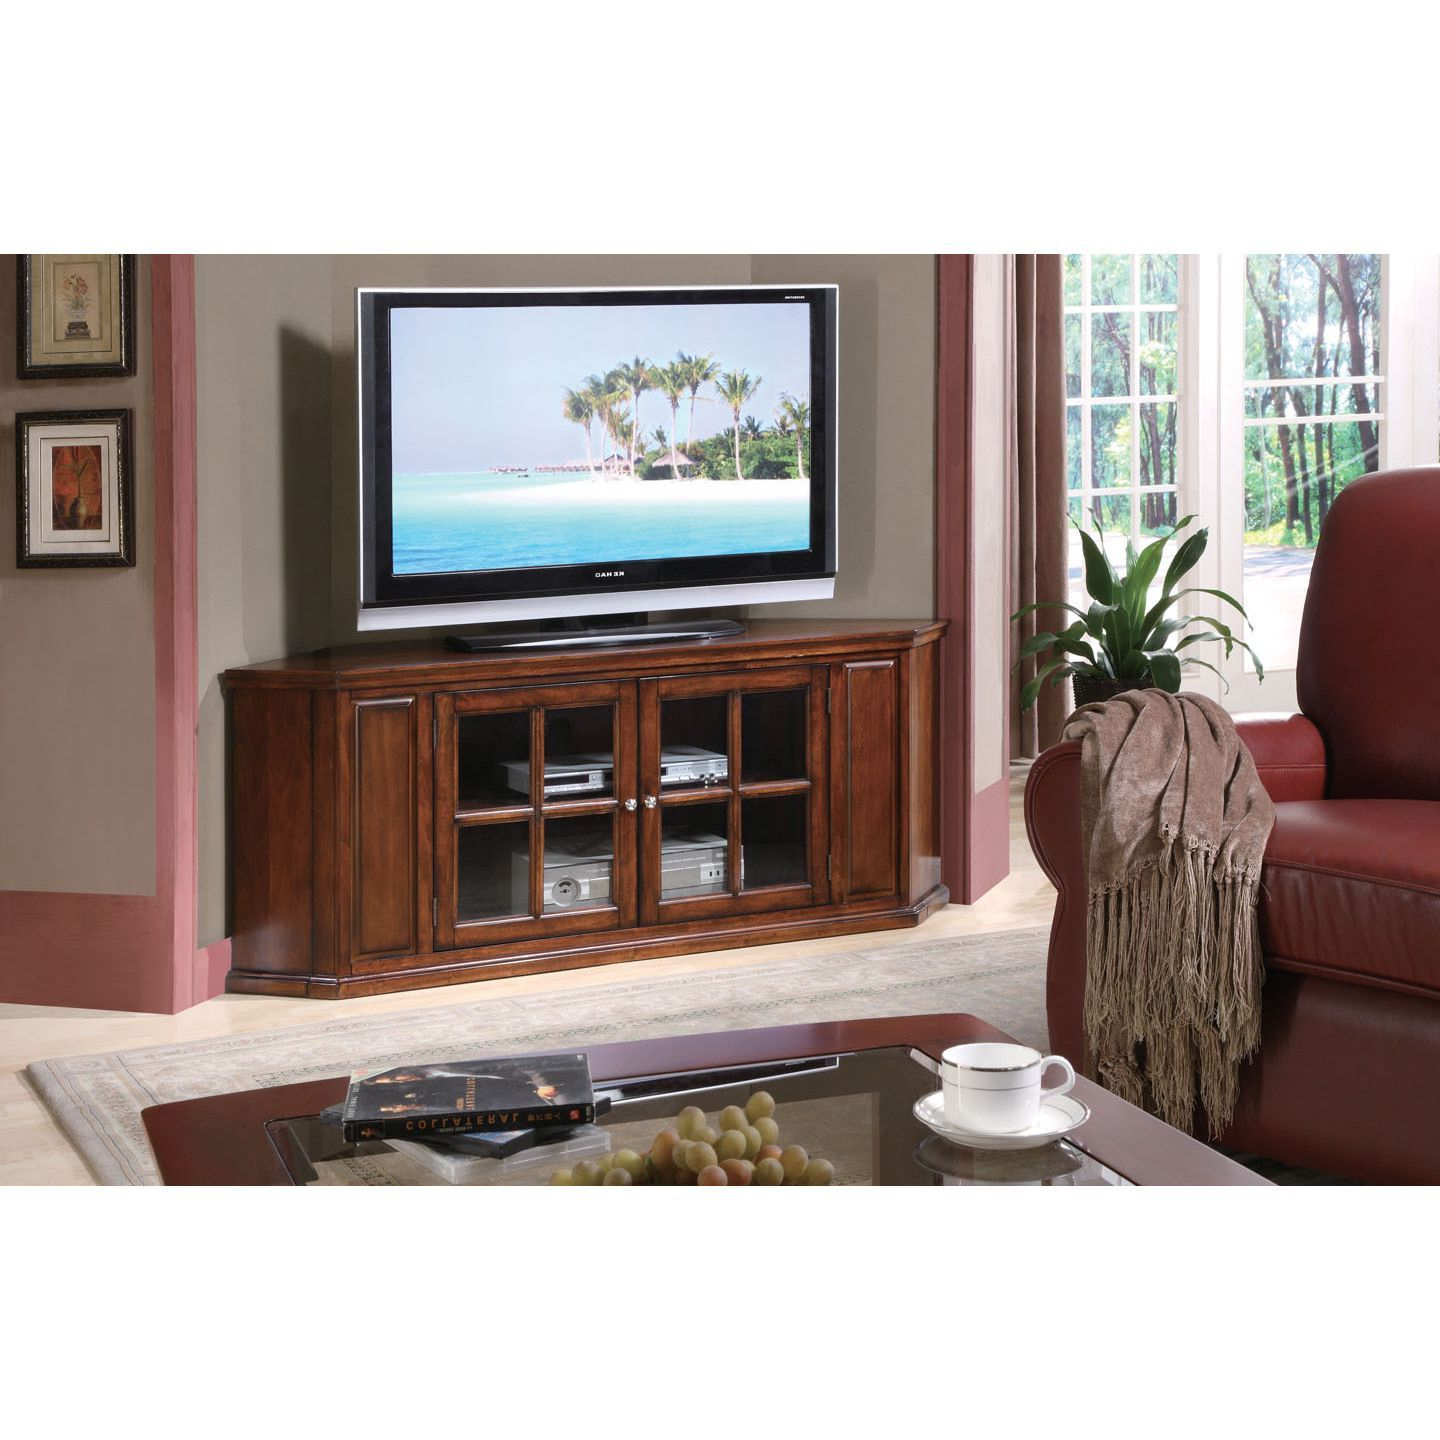 Corner Tv Intended For Best And Newest Corner Tv Stands For 60 Inch Tv (View 13 of 20)